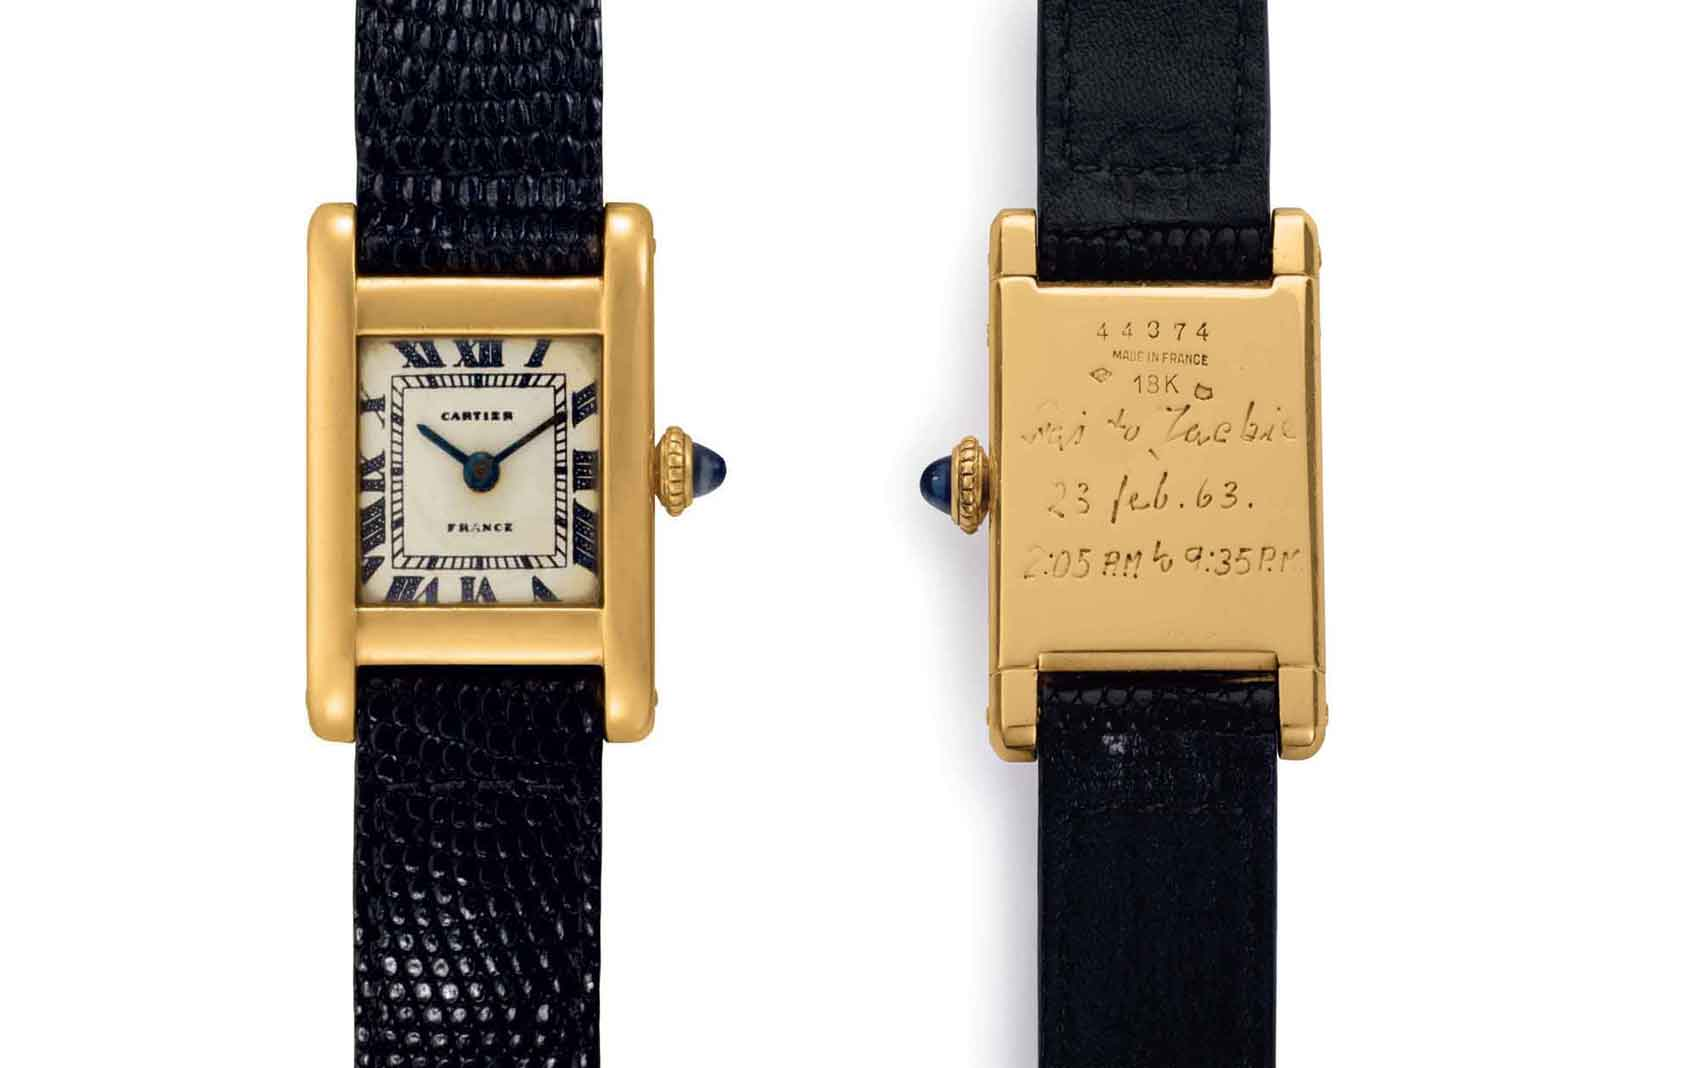 """A fine and historically important 18k gold square-shaped wristwatch, belonging to Jacqueline Kennedy Onassis. Signed Cartier, Tank Model, Movement No. 2'117'860, Case No. 44374, Manufactured in 1962. A gift from her brother-in-law Prince Stanislaw """"Stas"""" Radziwill, it is engraved with the inscription """"Stas to Jackie, 23 Feb. 1963. 2.05am to 9.35am.""""       Estimate: $60,000-120,000"""